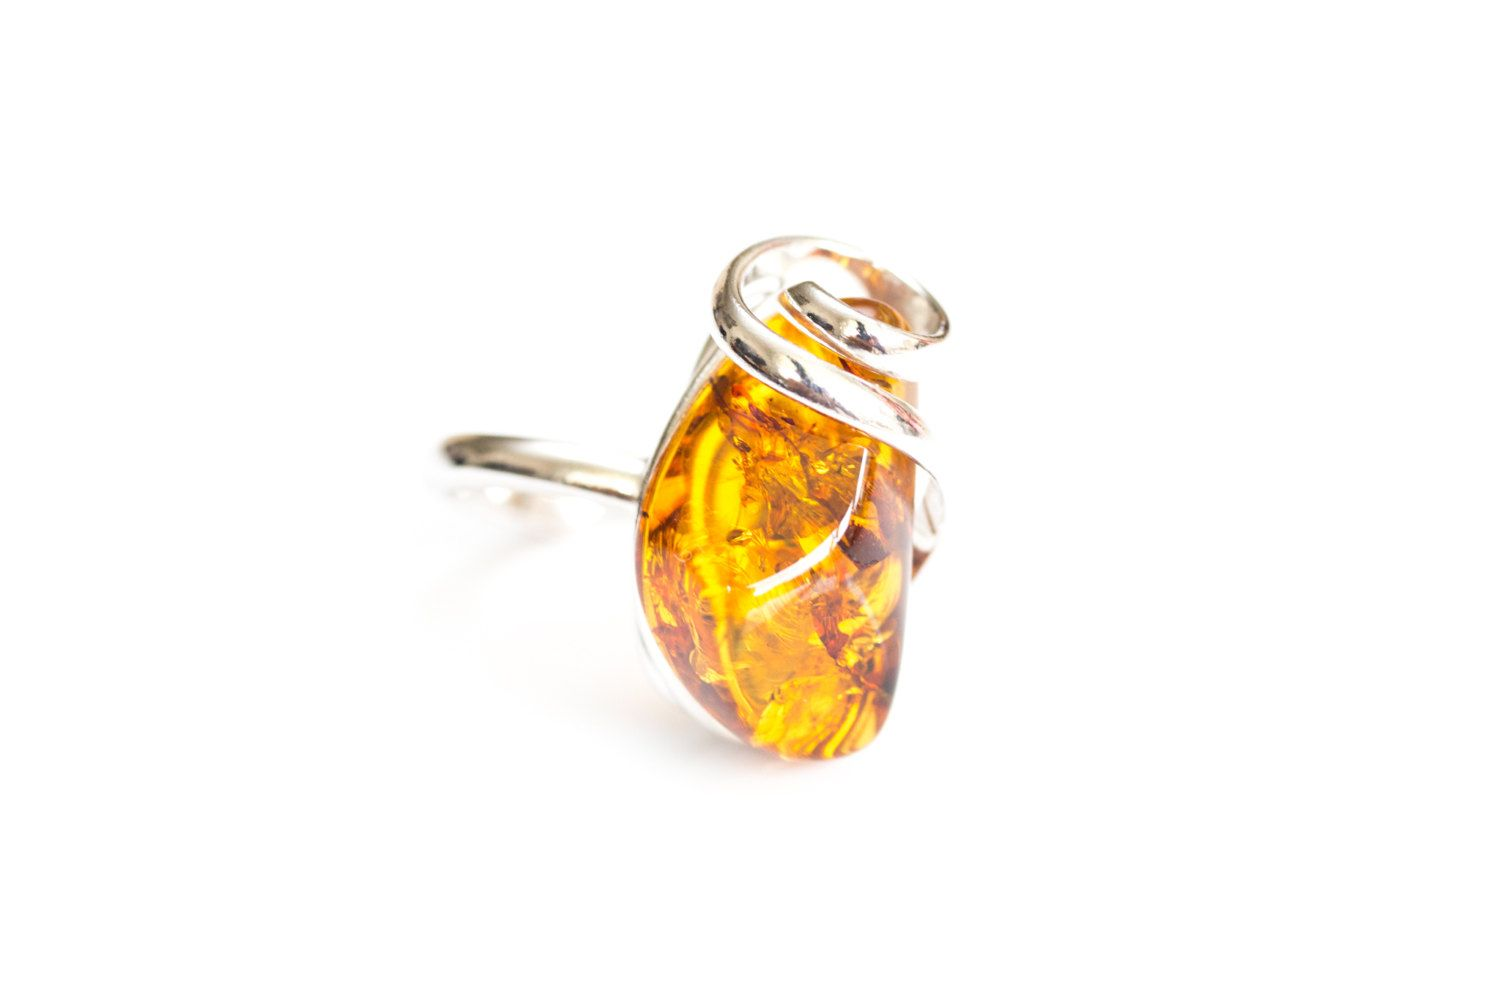 Unique Amber Adjustable Ring, baltic amber & sterling silver ring, amber ring, fully adjustable ring, fashionable ring, amber statement ring by BalticBeauty925 on Etsy